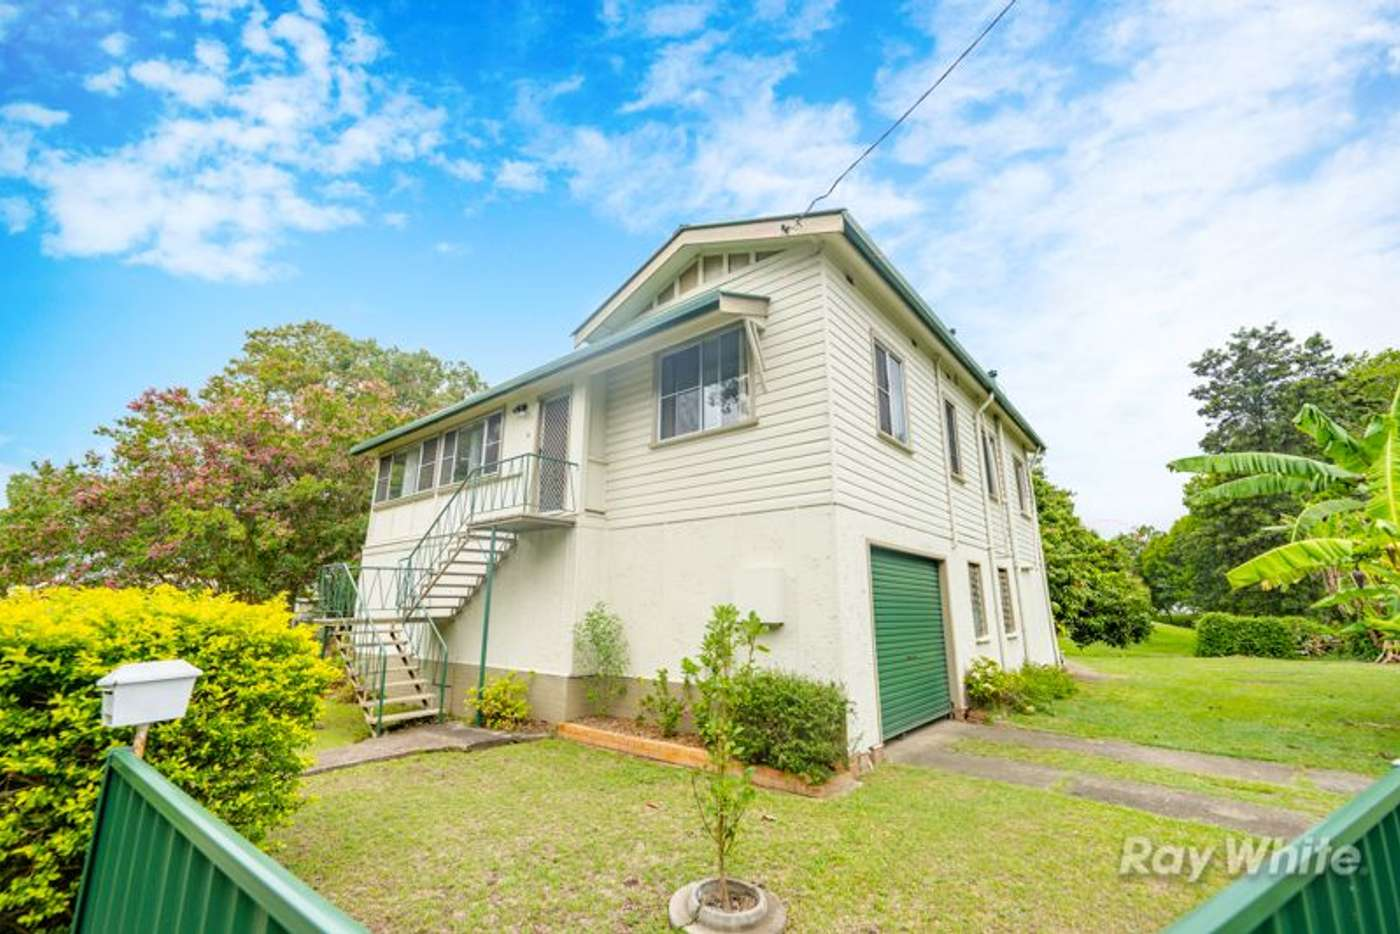 Main view of Homely house listing, 63 Wharf Street, South Grafton NSW 2460